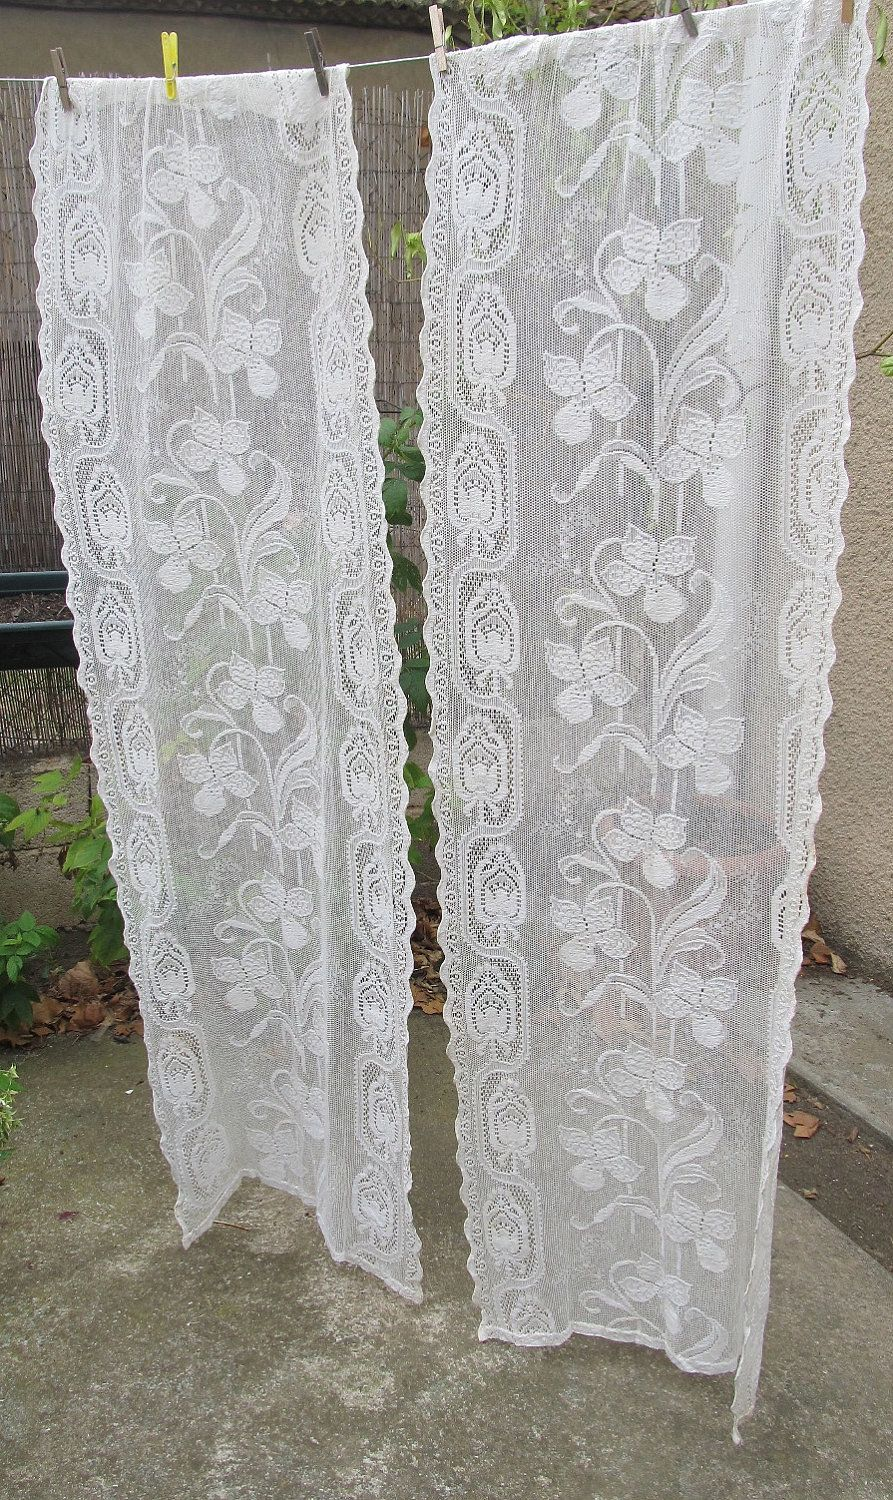 Ecru Vintage Lace Curtains Cream French Curtain Panels 4500 Via Etsy